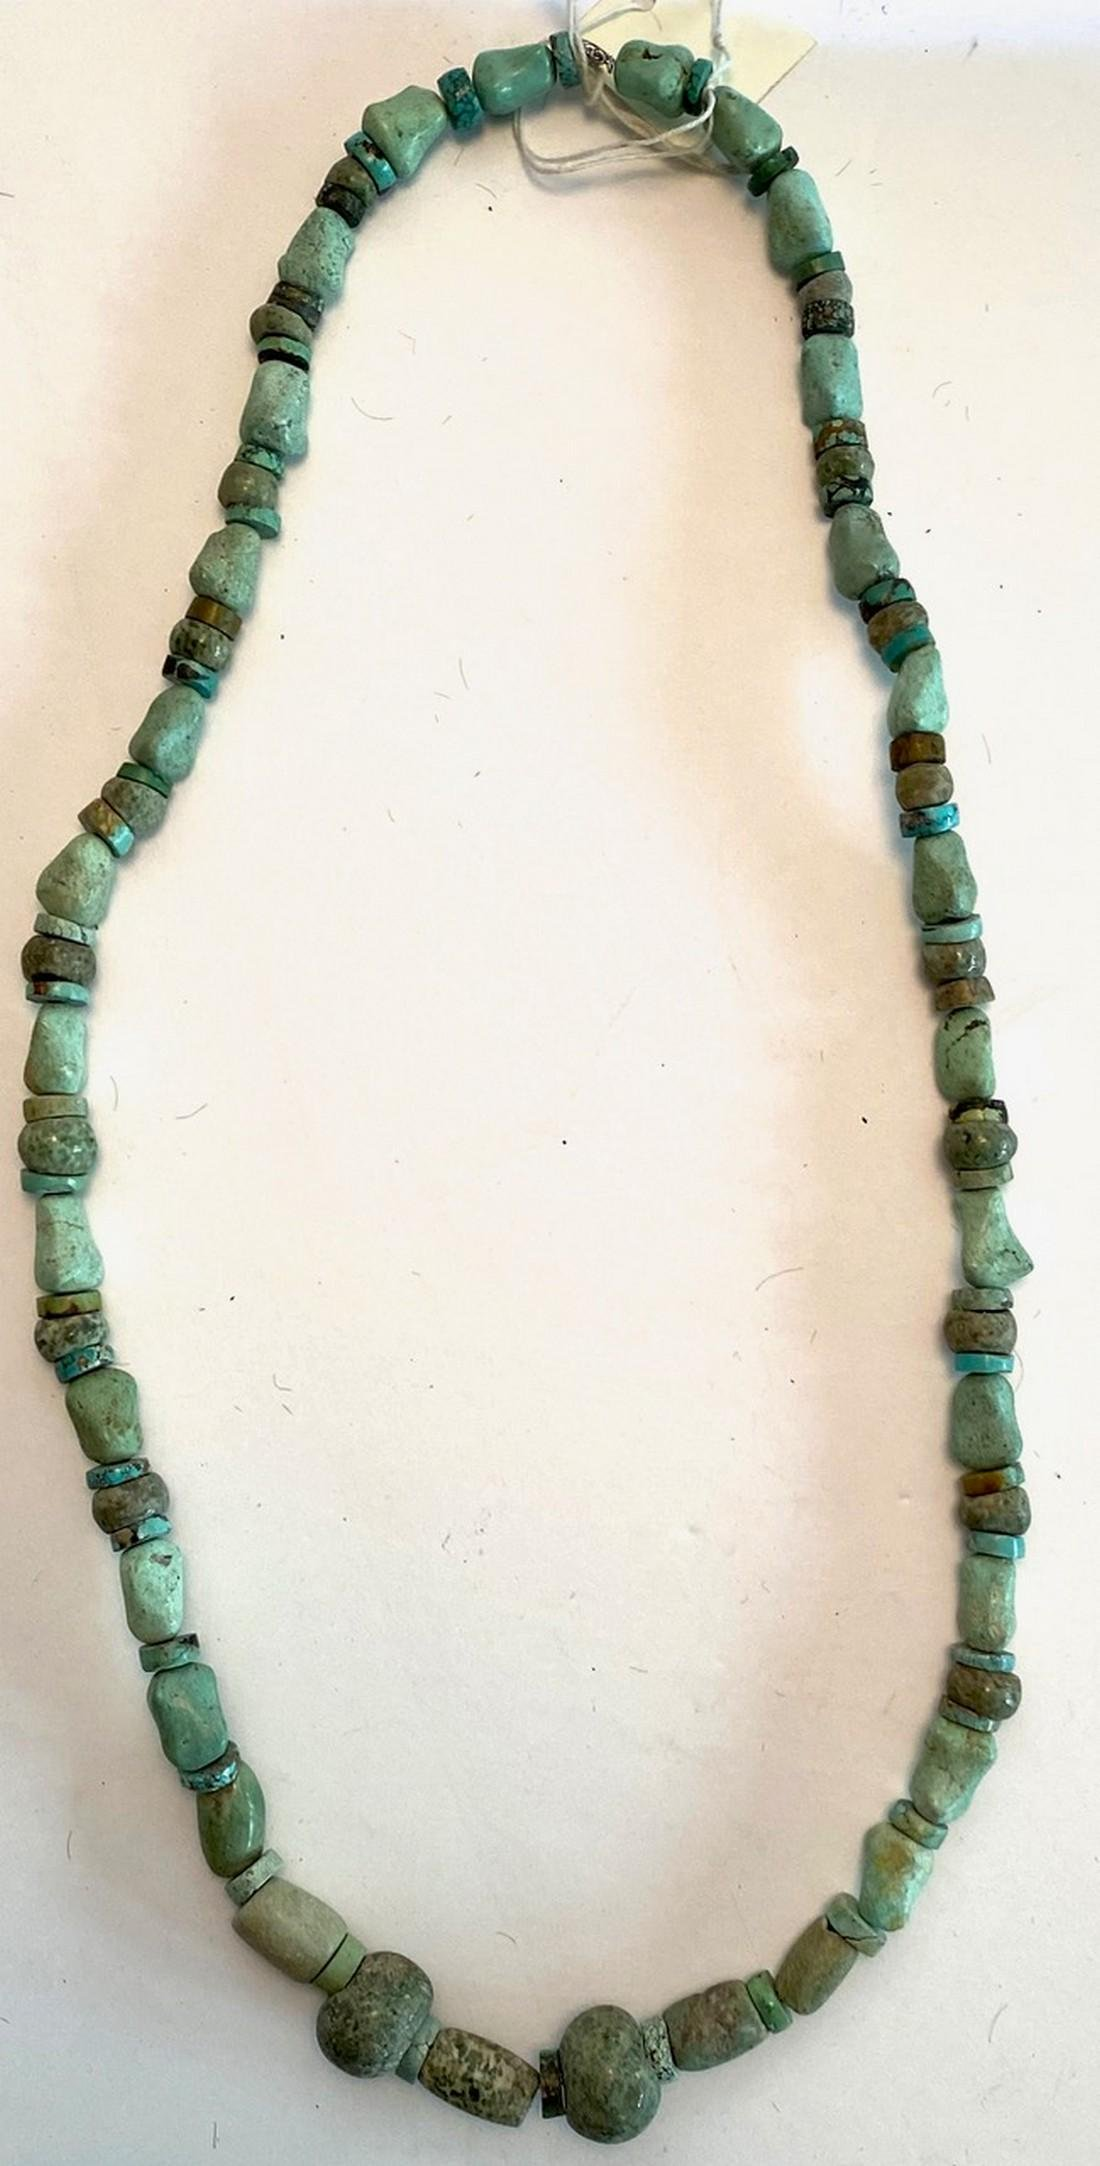 Vintage 1920s Turquoise Necklace